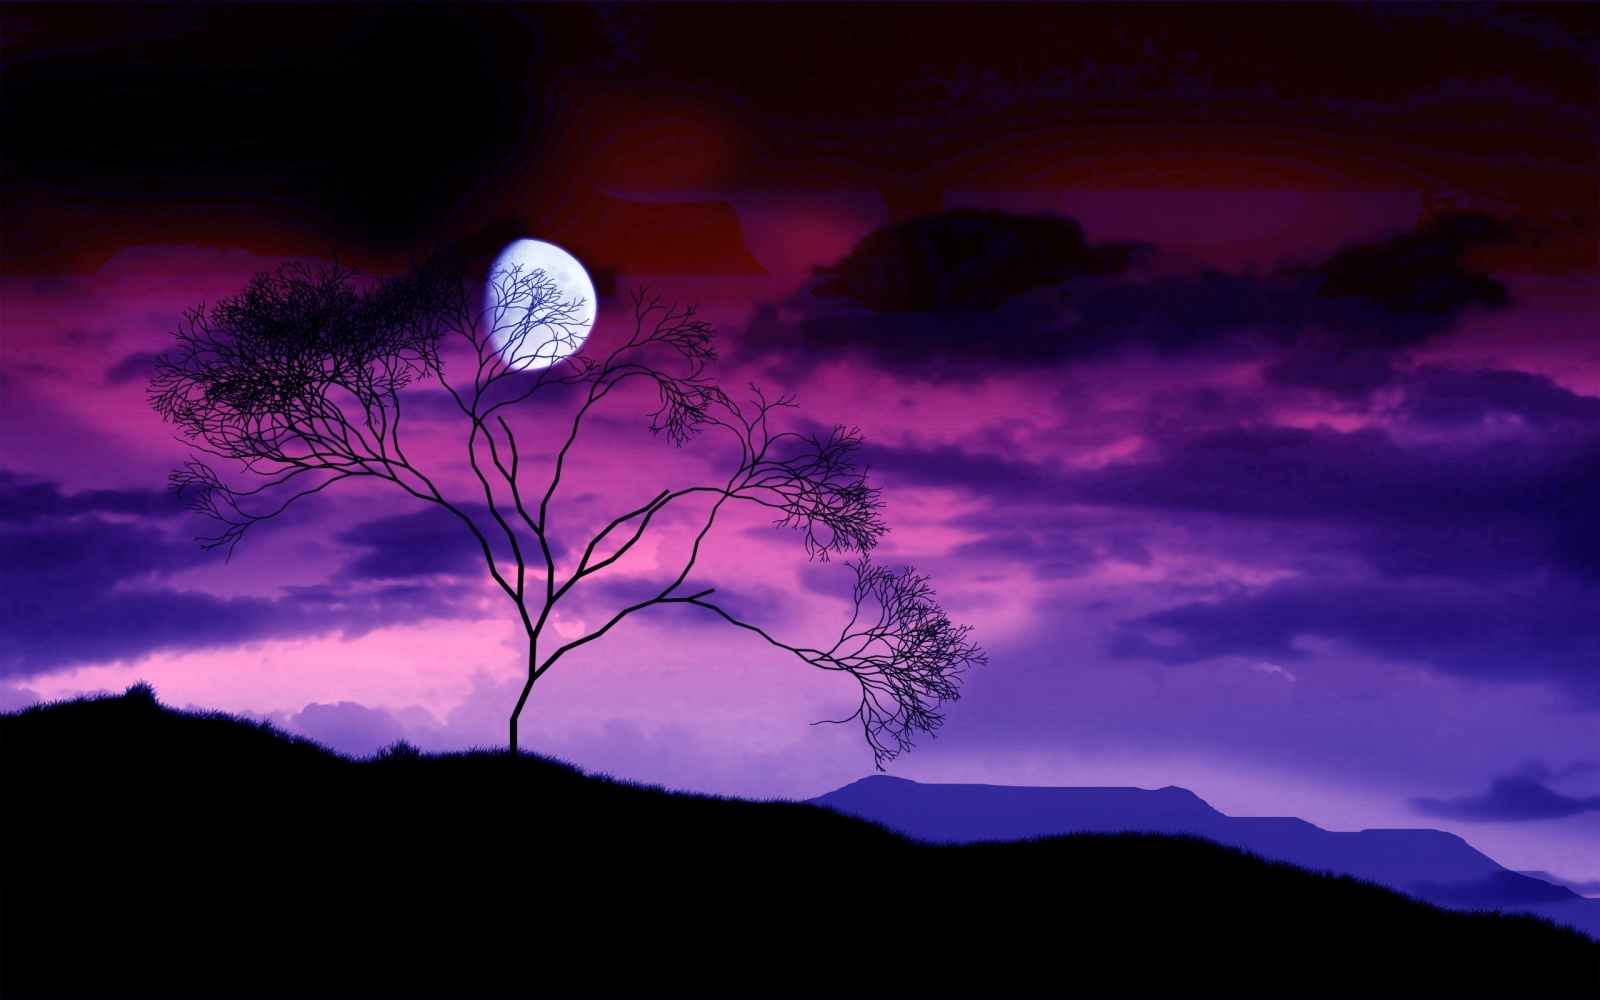 Wallpaper high resolution nature backgrounds - Cool night nature backgrounds ...